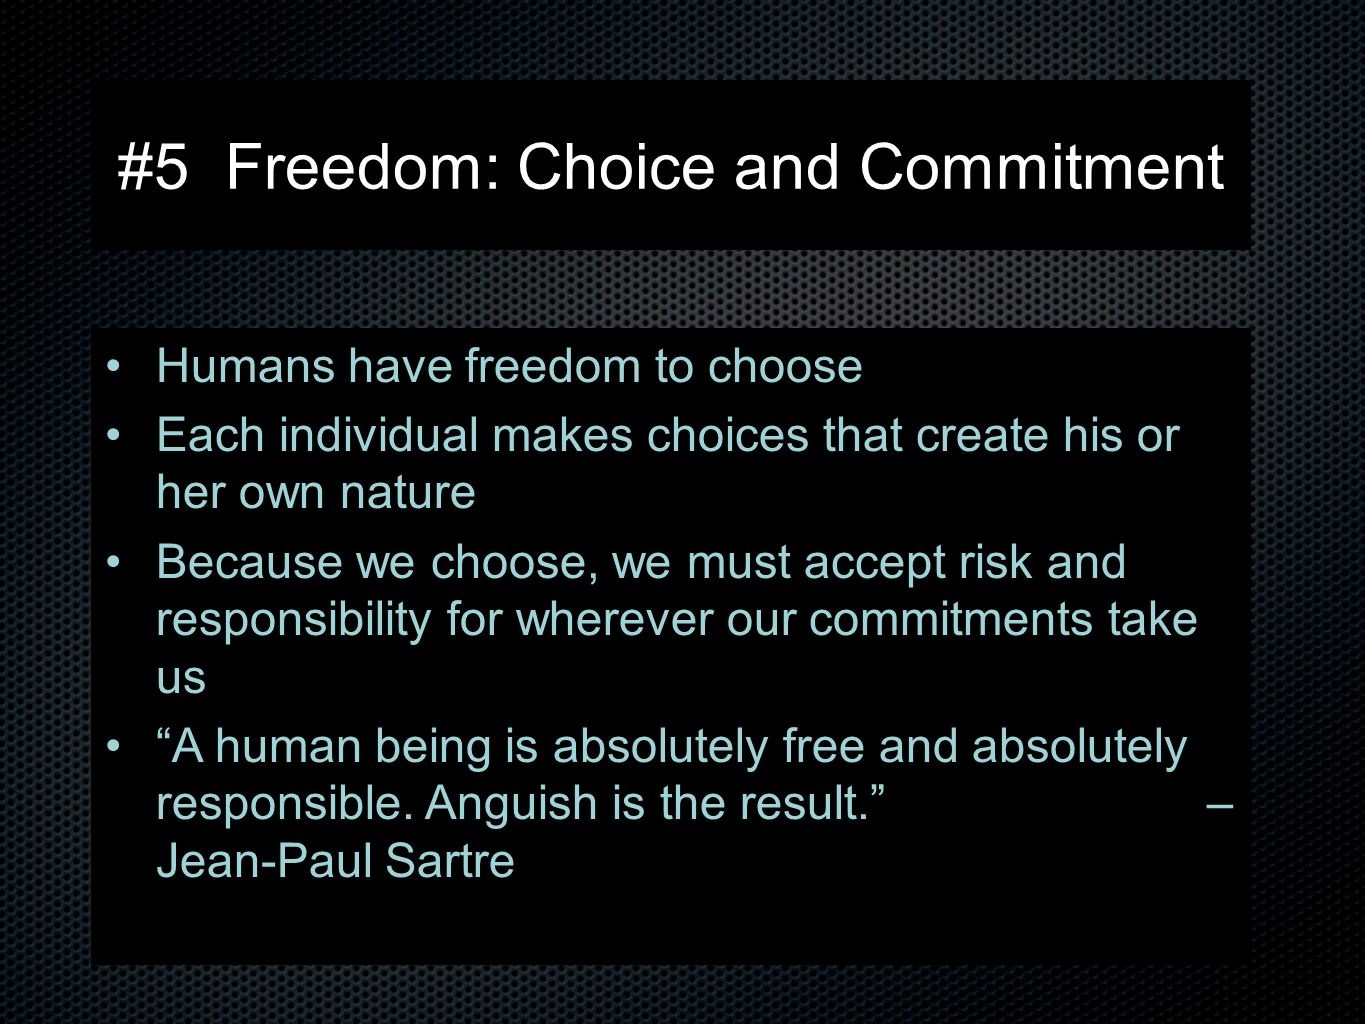 the freedom to make a personal choice Preamble smokers association is an international non-profit organisation in support of human rights and, in particular, but not limited to, in defence of those who expect from life the freedom to smoke, drink, eat and to enjoy personal lifestyle choices without restrictions or interferences.